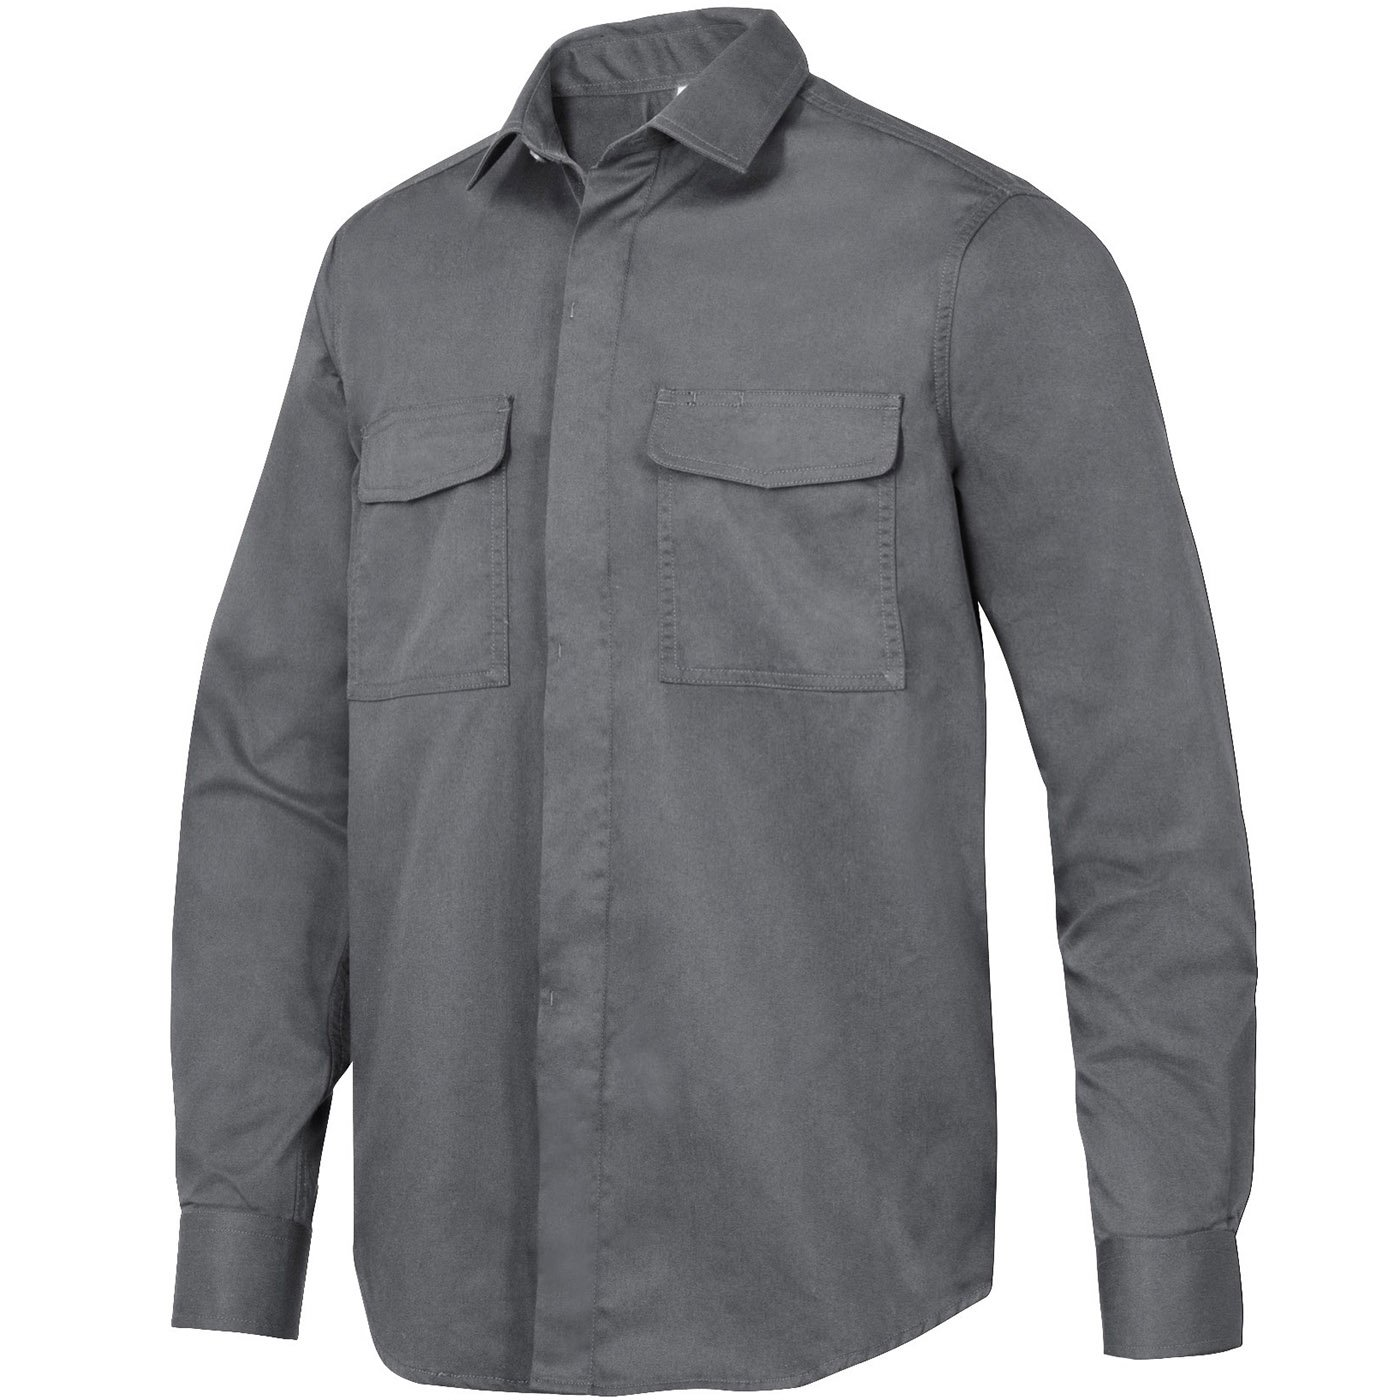 Snickers 85105800009 Size 3X-Large Service Long Sleeve Shirt - Steel Grey